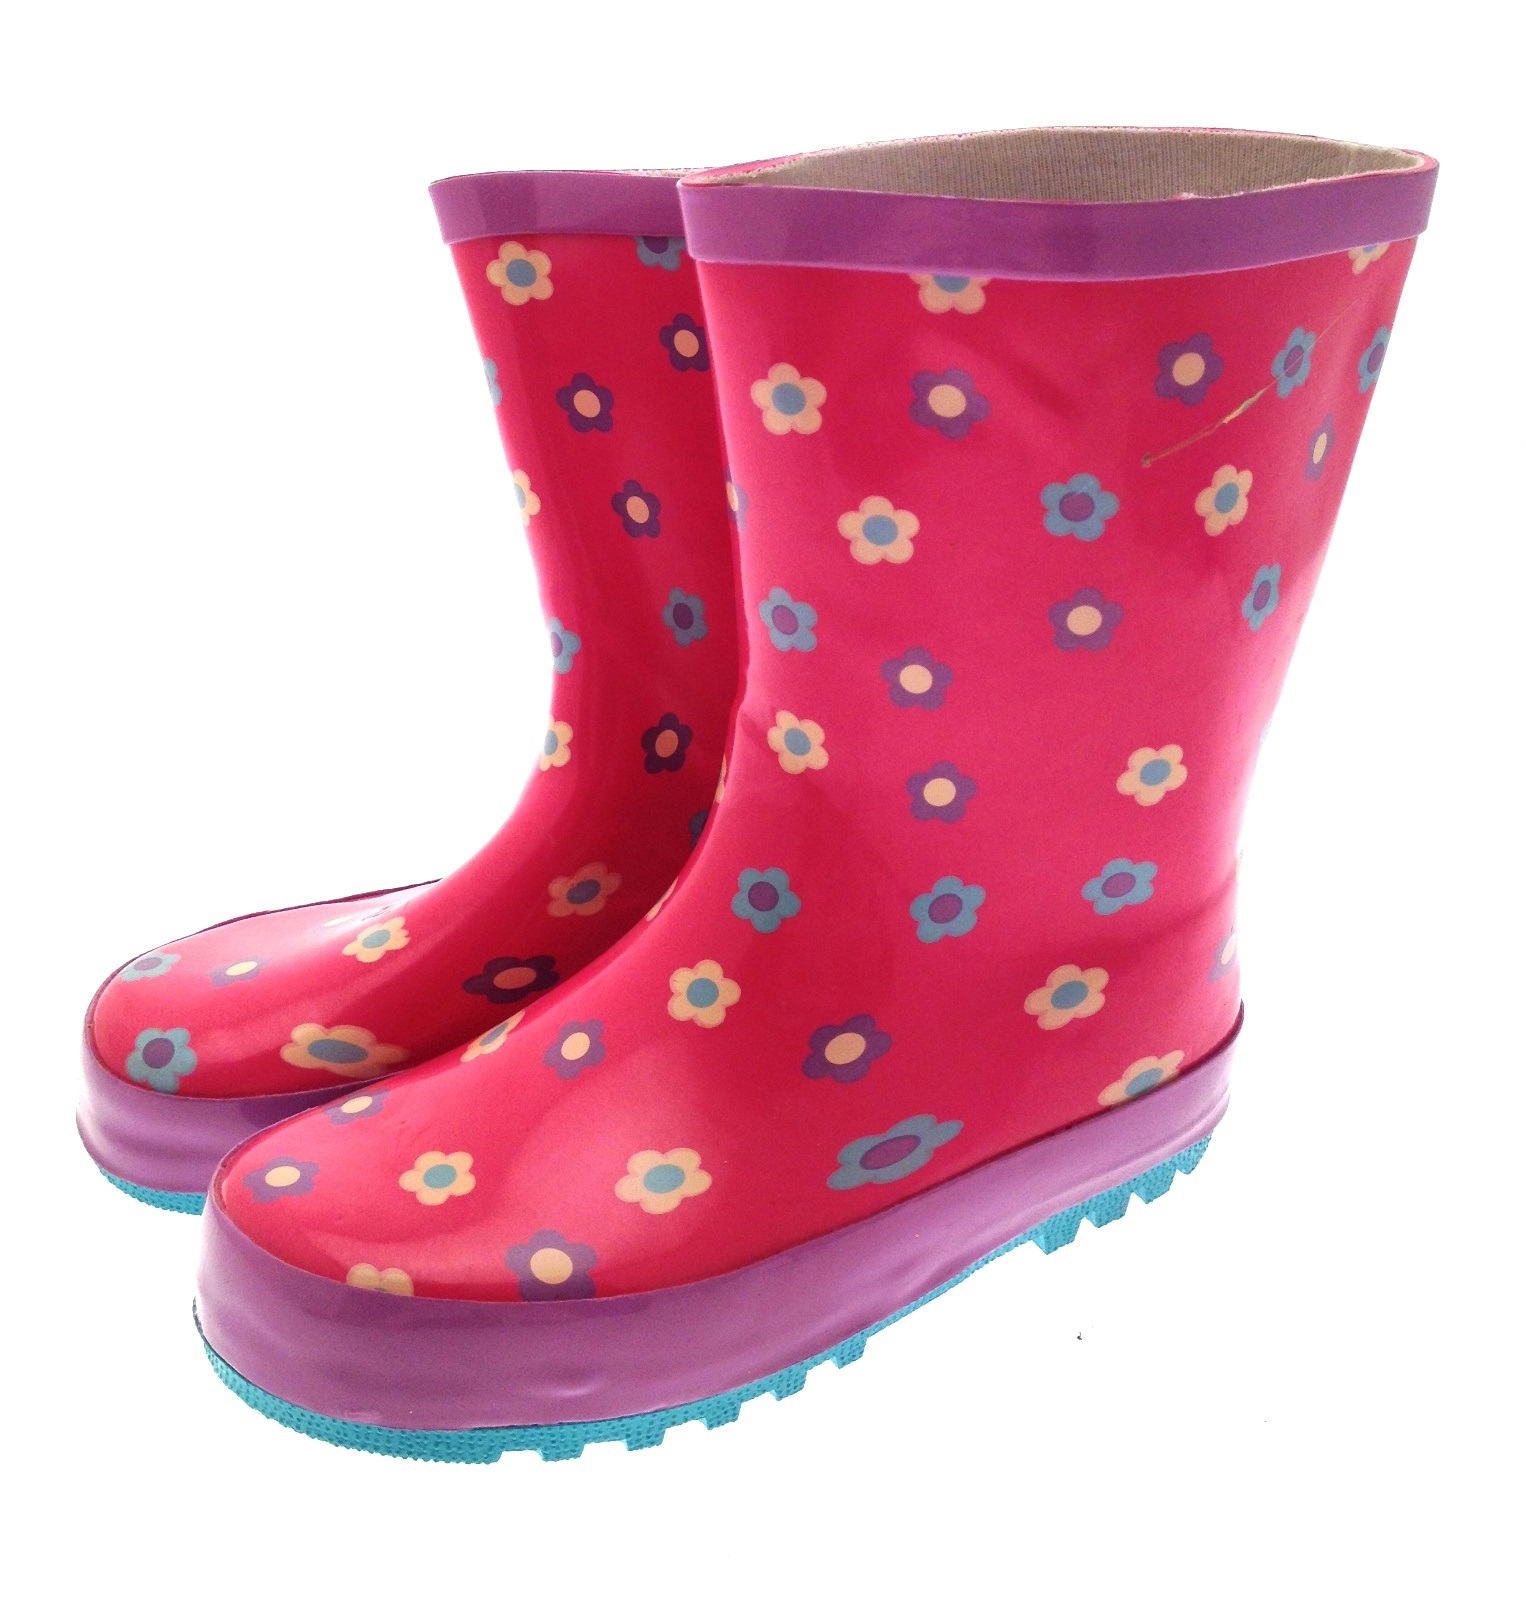 wellies - photo #42